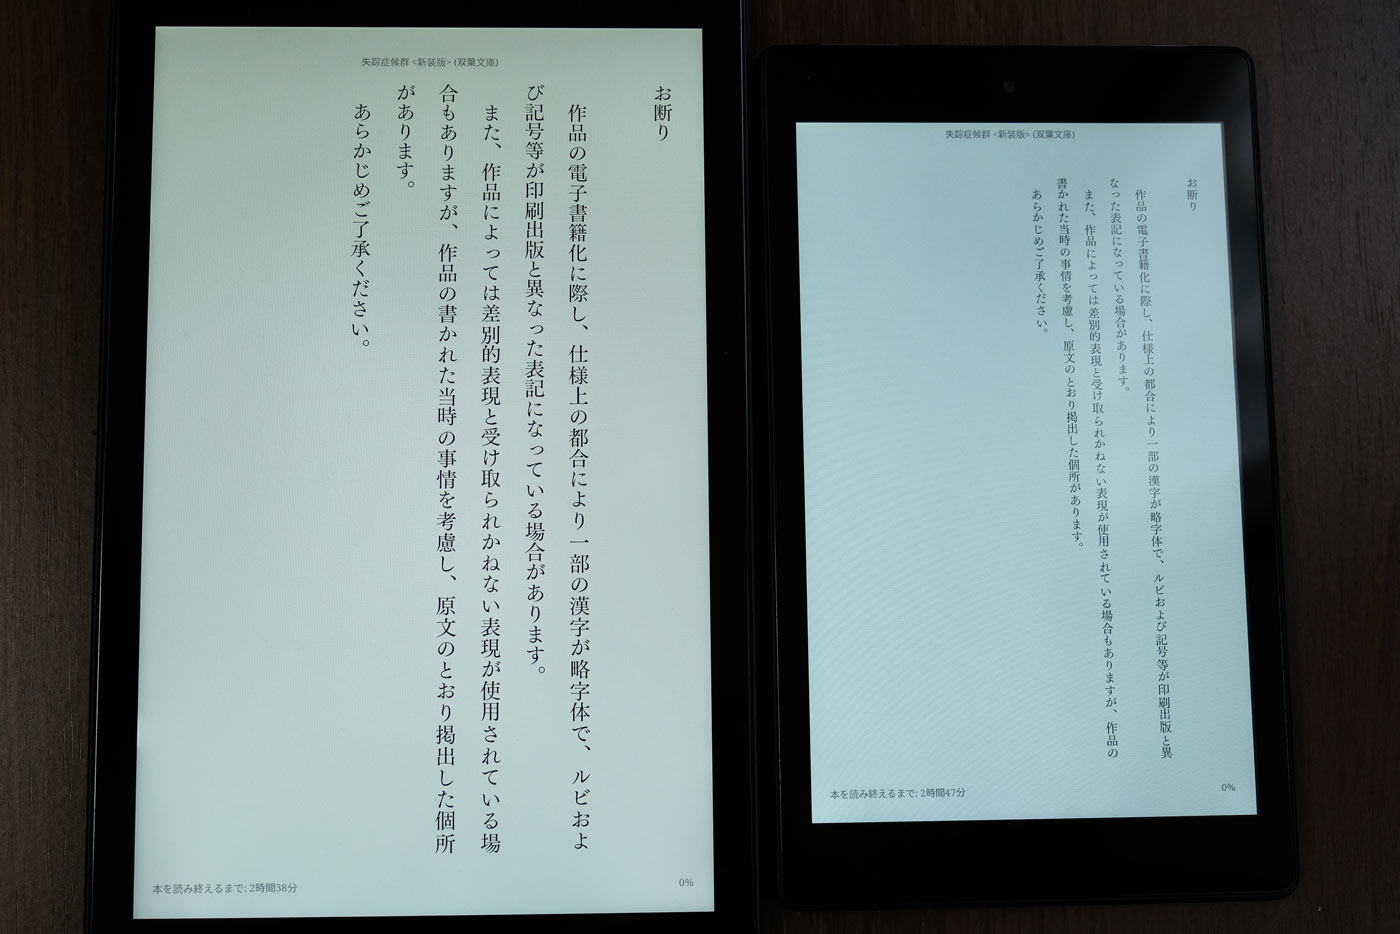 Fire HD 10 vs Fire HD 8 Kindle画面